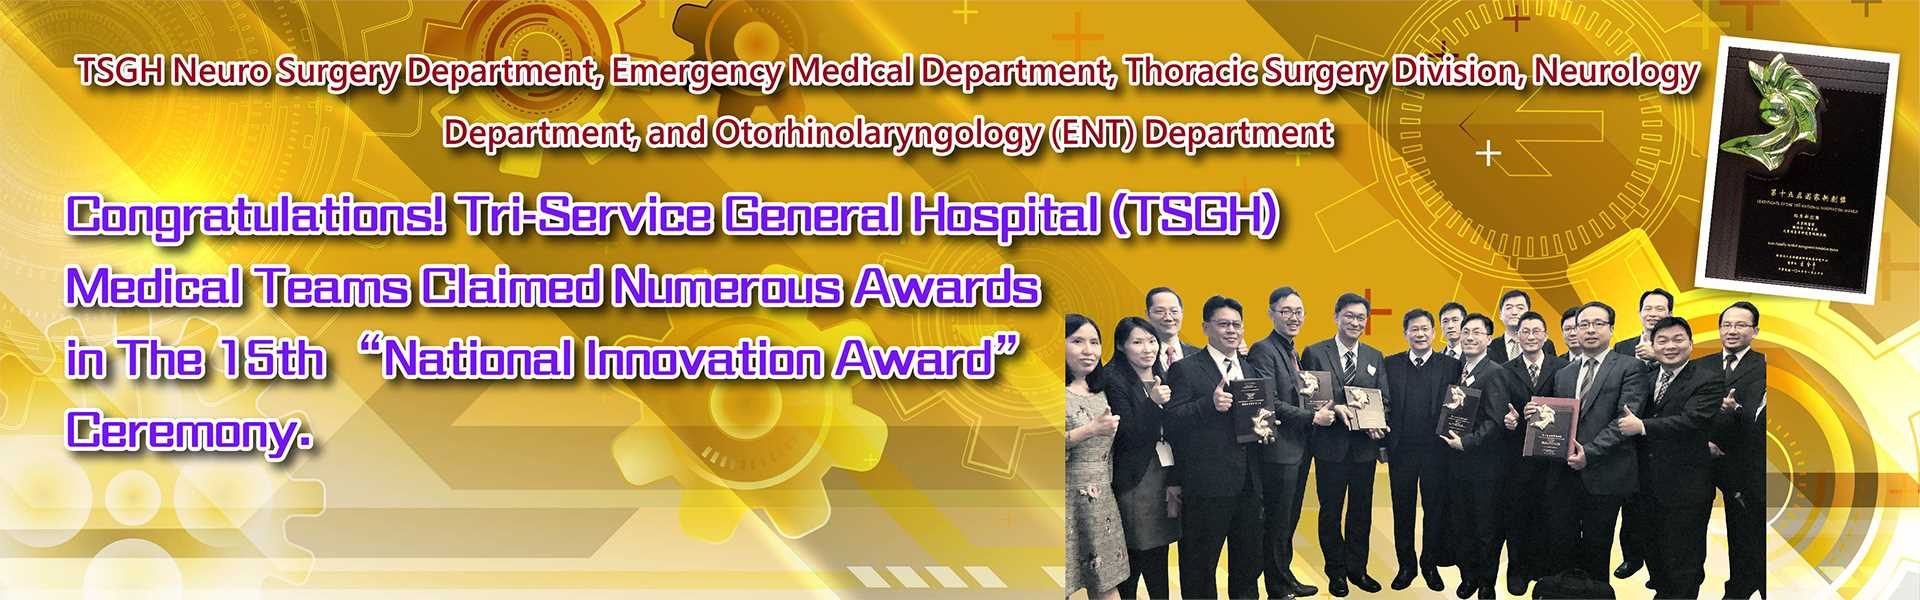 "Tri-Service_General_Hospital_(TSGH)_Won_""National_Innovation_Award""_Bestowed_by_Research_Center_for_Biotechnology_and_Medicine_Policy_(RBMP)"